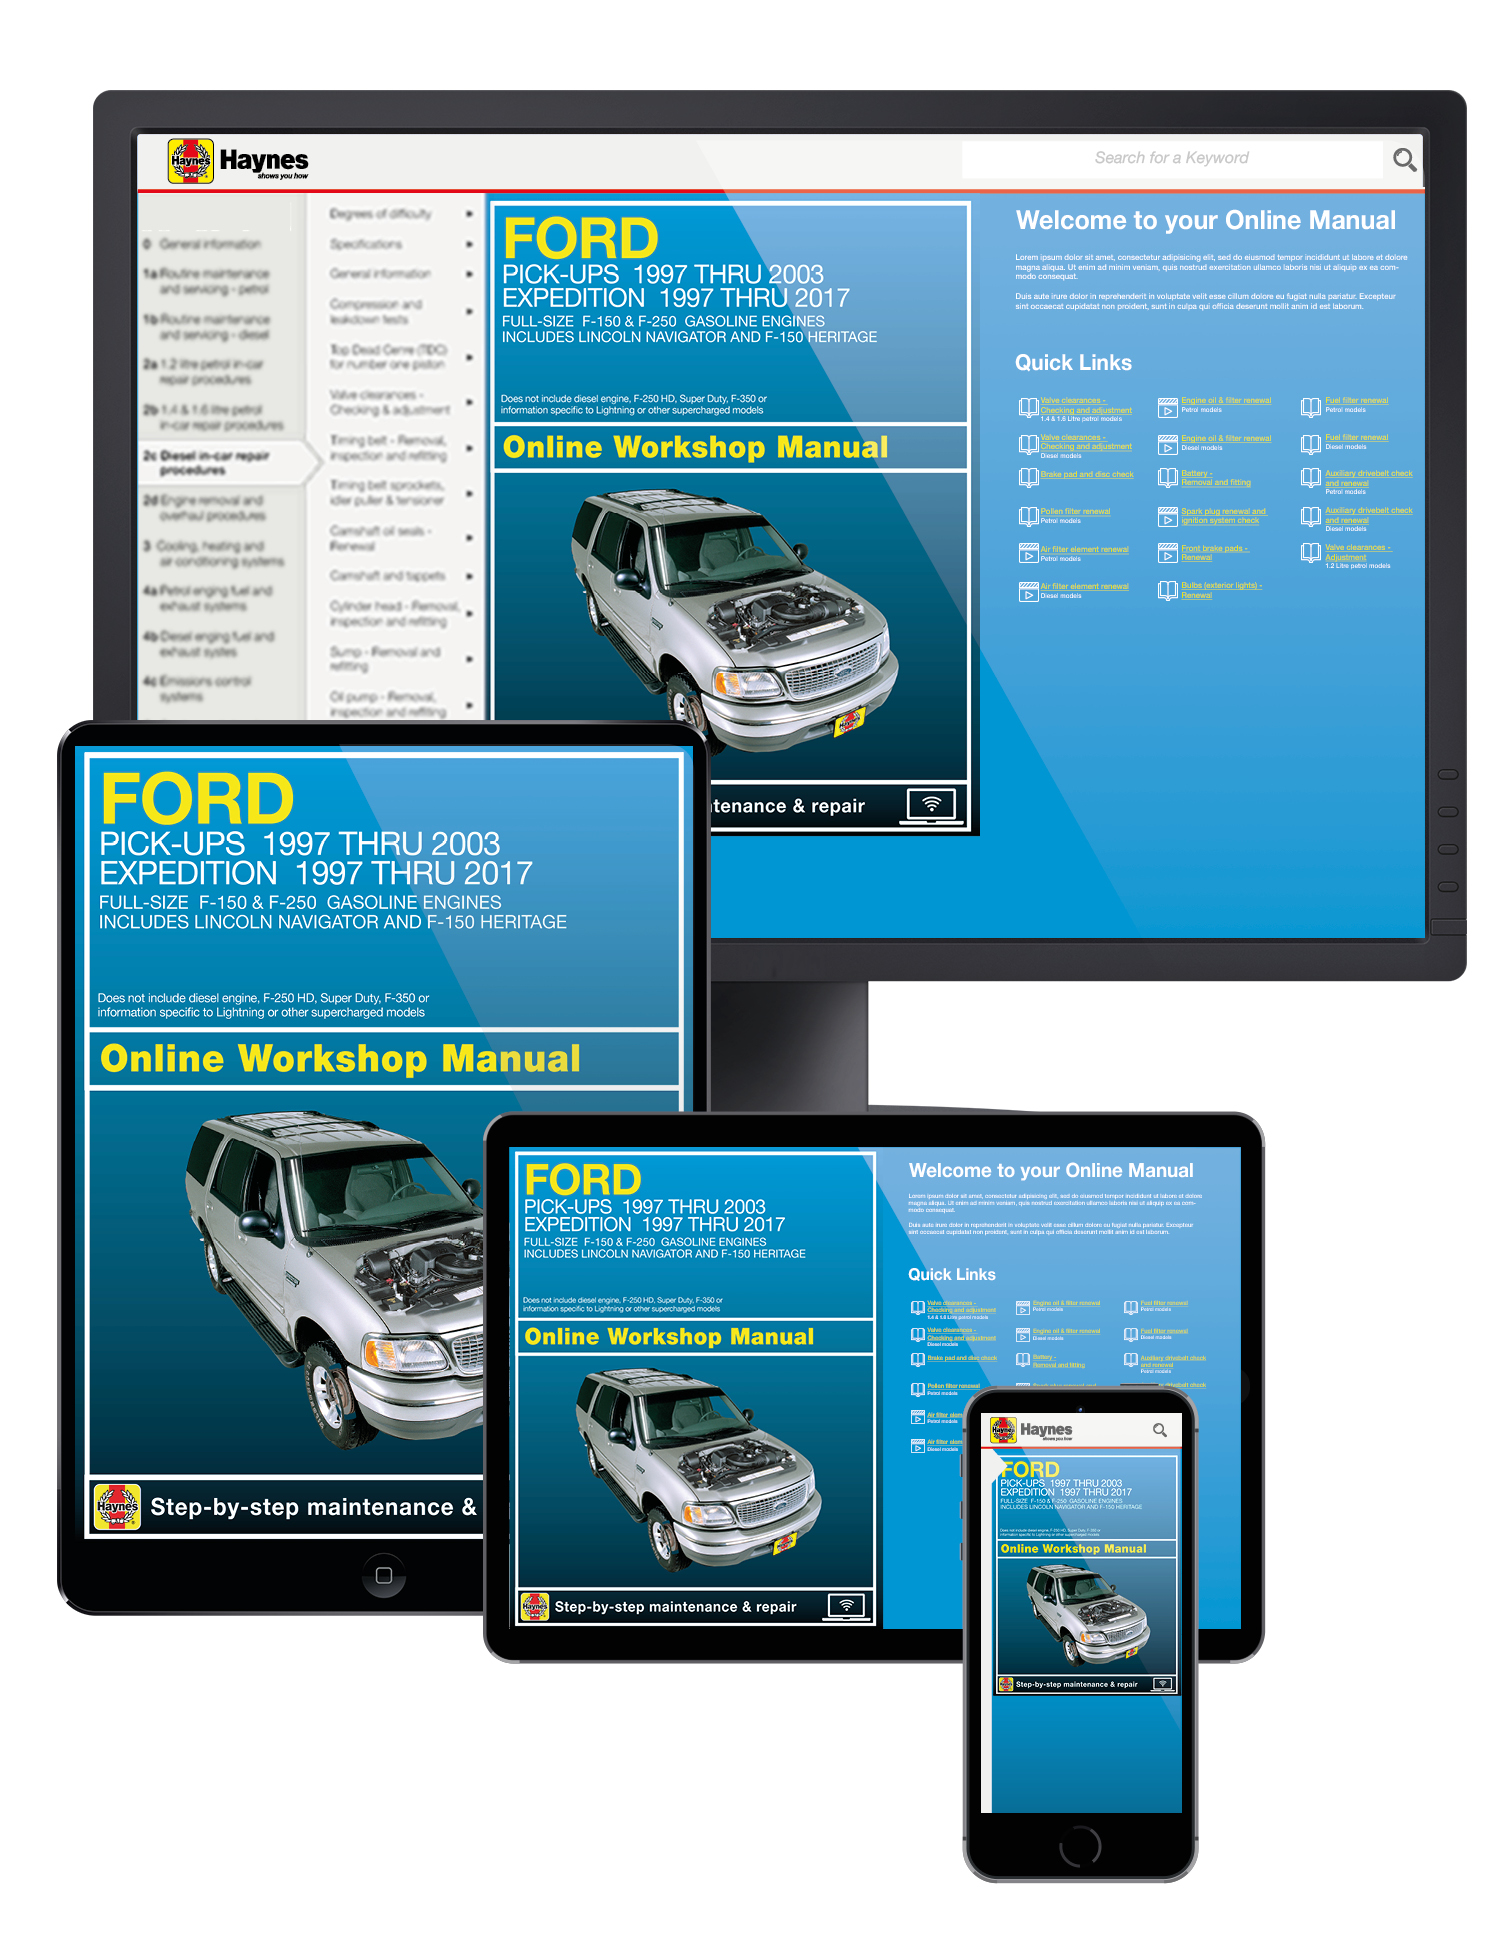 Ford F-150 (97-03), F-150 Heritage (04), F-250 (97-99), Expedition (97-17) & Lincoln Navigator (98-17) 2WD & 4WD Haynes Online Manual from Haynes Manuals US